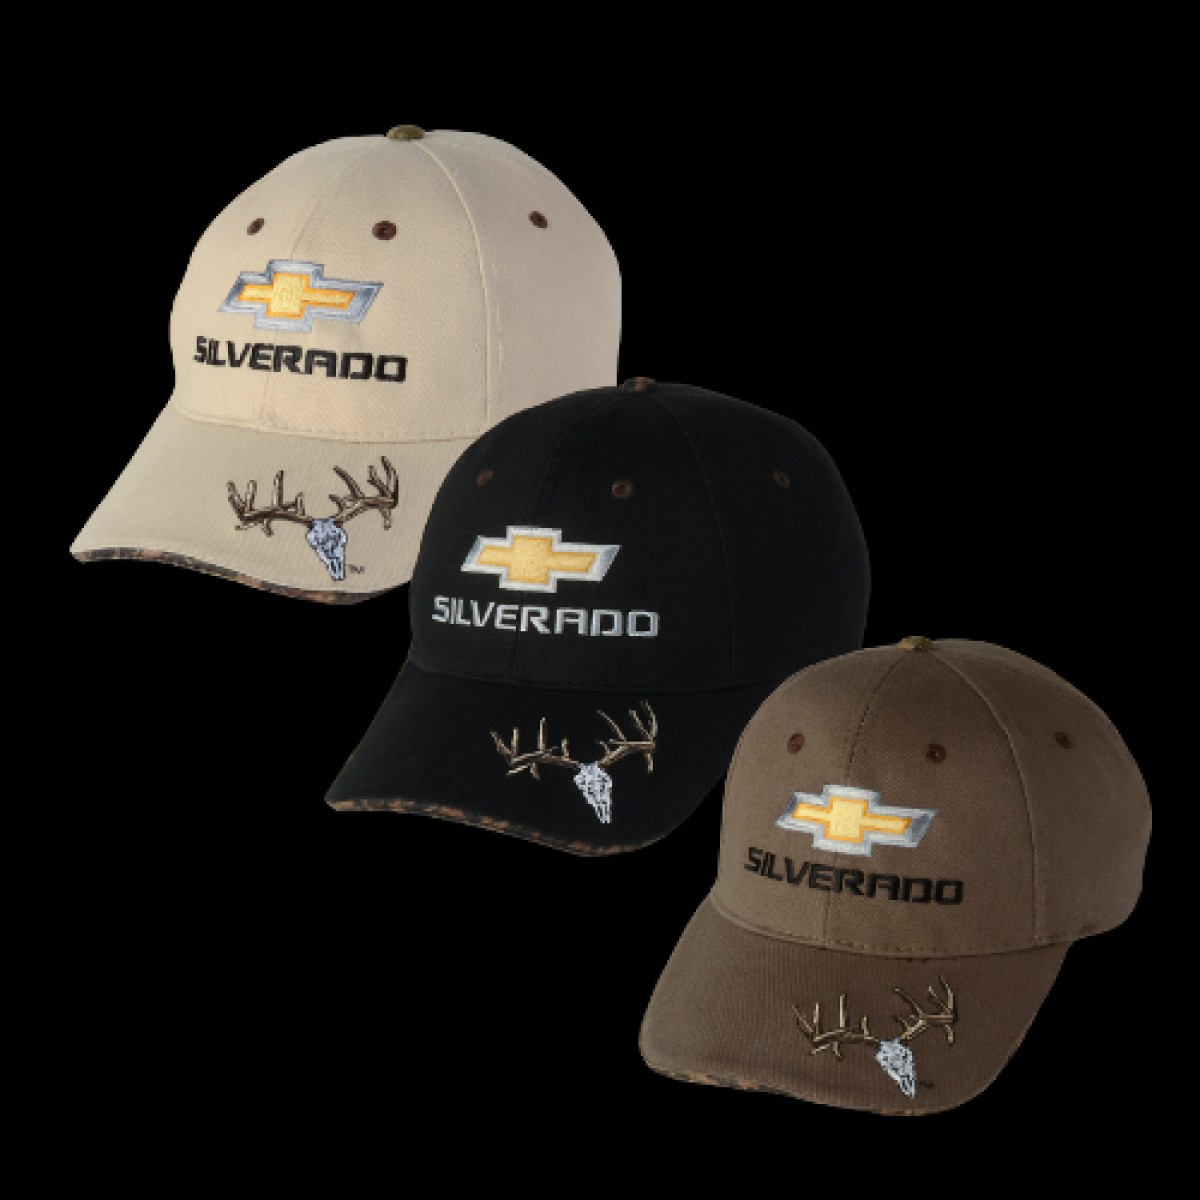 Hossrods Com Chevy Silverado Hat With Deer Skull Hot